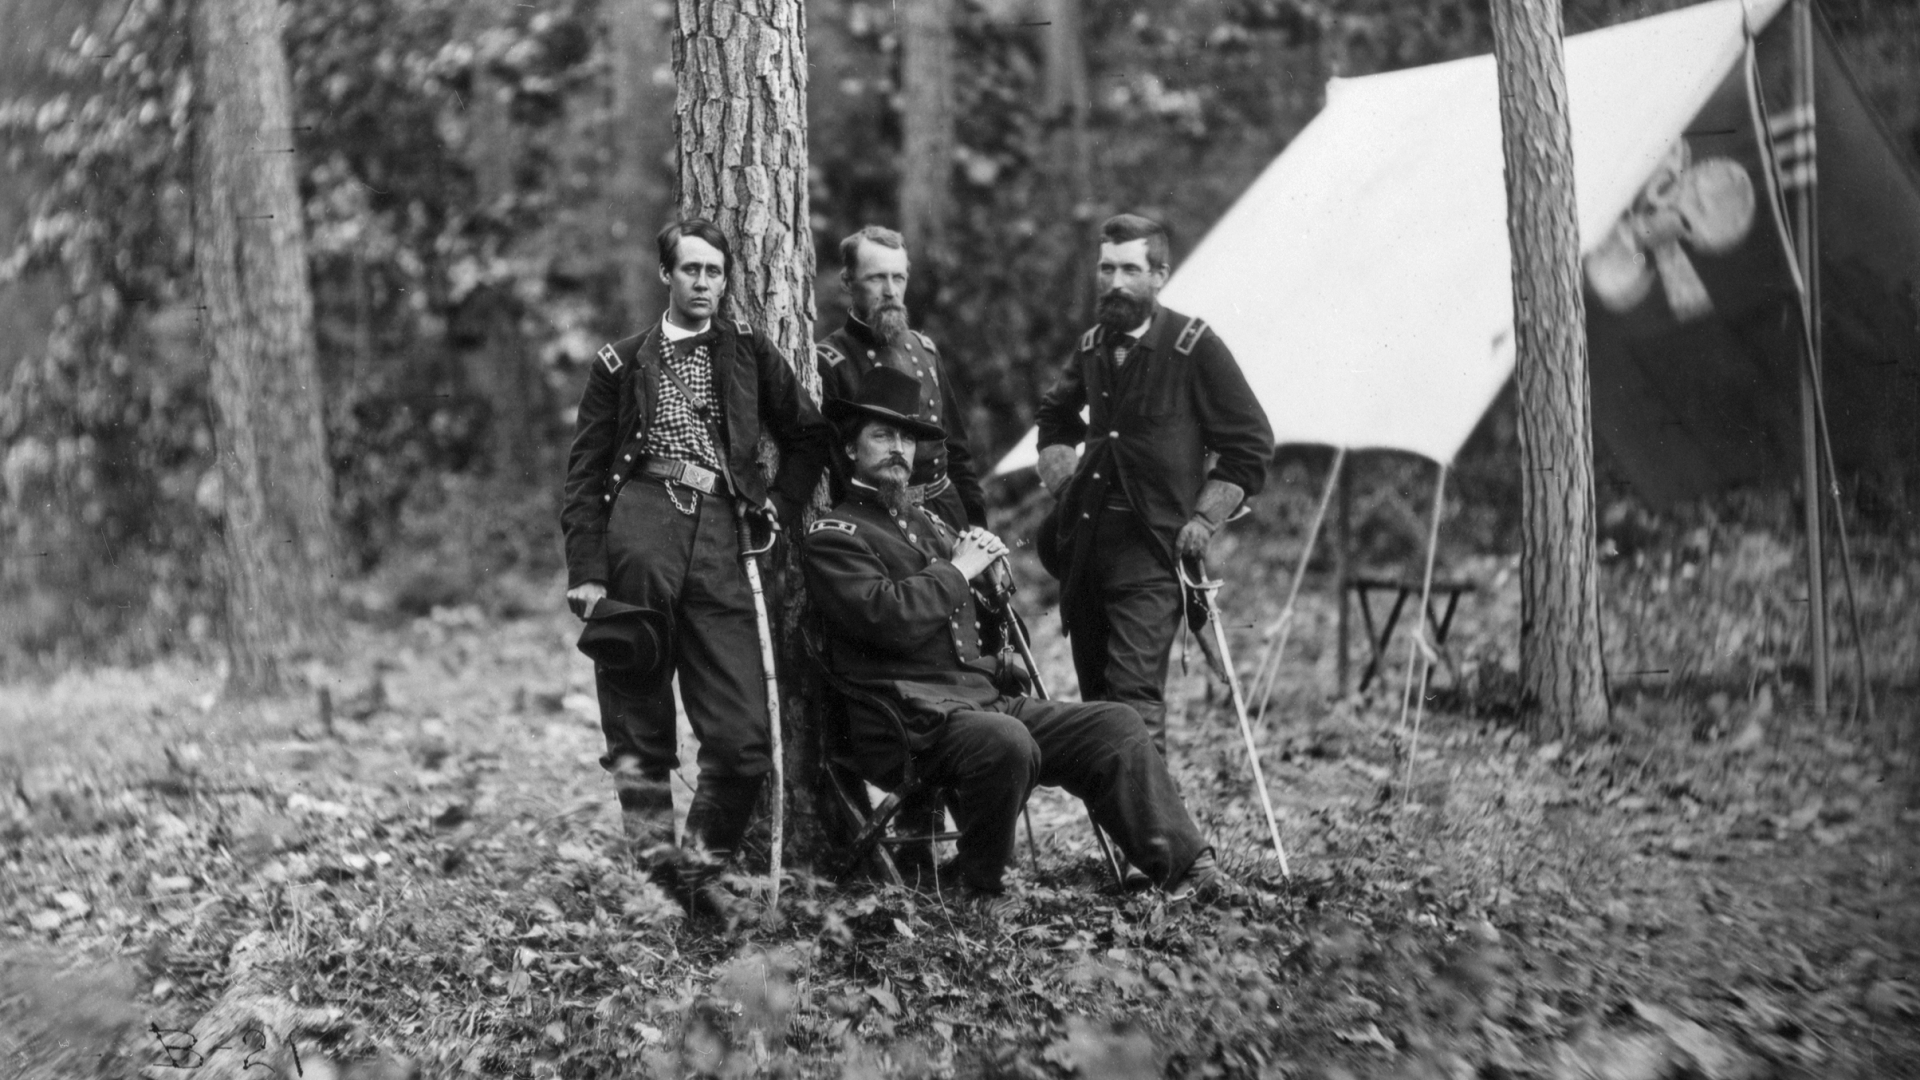 Portrait of General Winfield Scott Hancock (1824-1886), a Federal officer during the American Civil War, with members of his staff. Left to right are Generals Francis C. Barlow, David B. Birney, Winfield S. Hancock (seated), and John Gibbon. Each of these officers was wounded during the Battle of Gettysburg. (Photo by © CORBIS/Corbis via Getty Images)